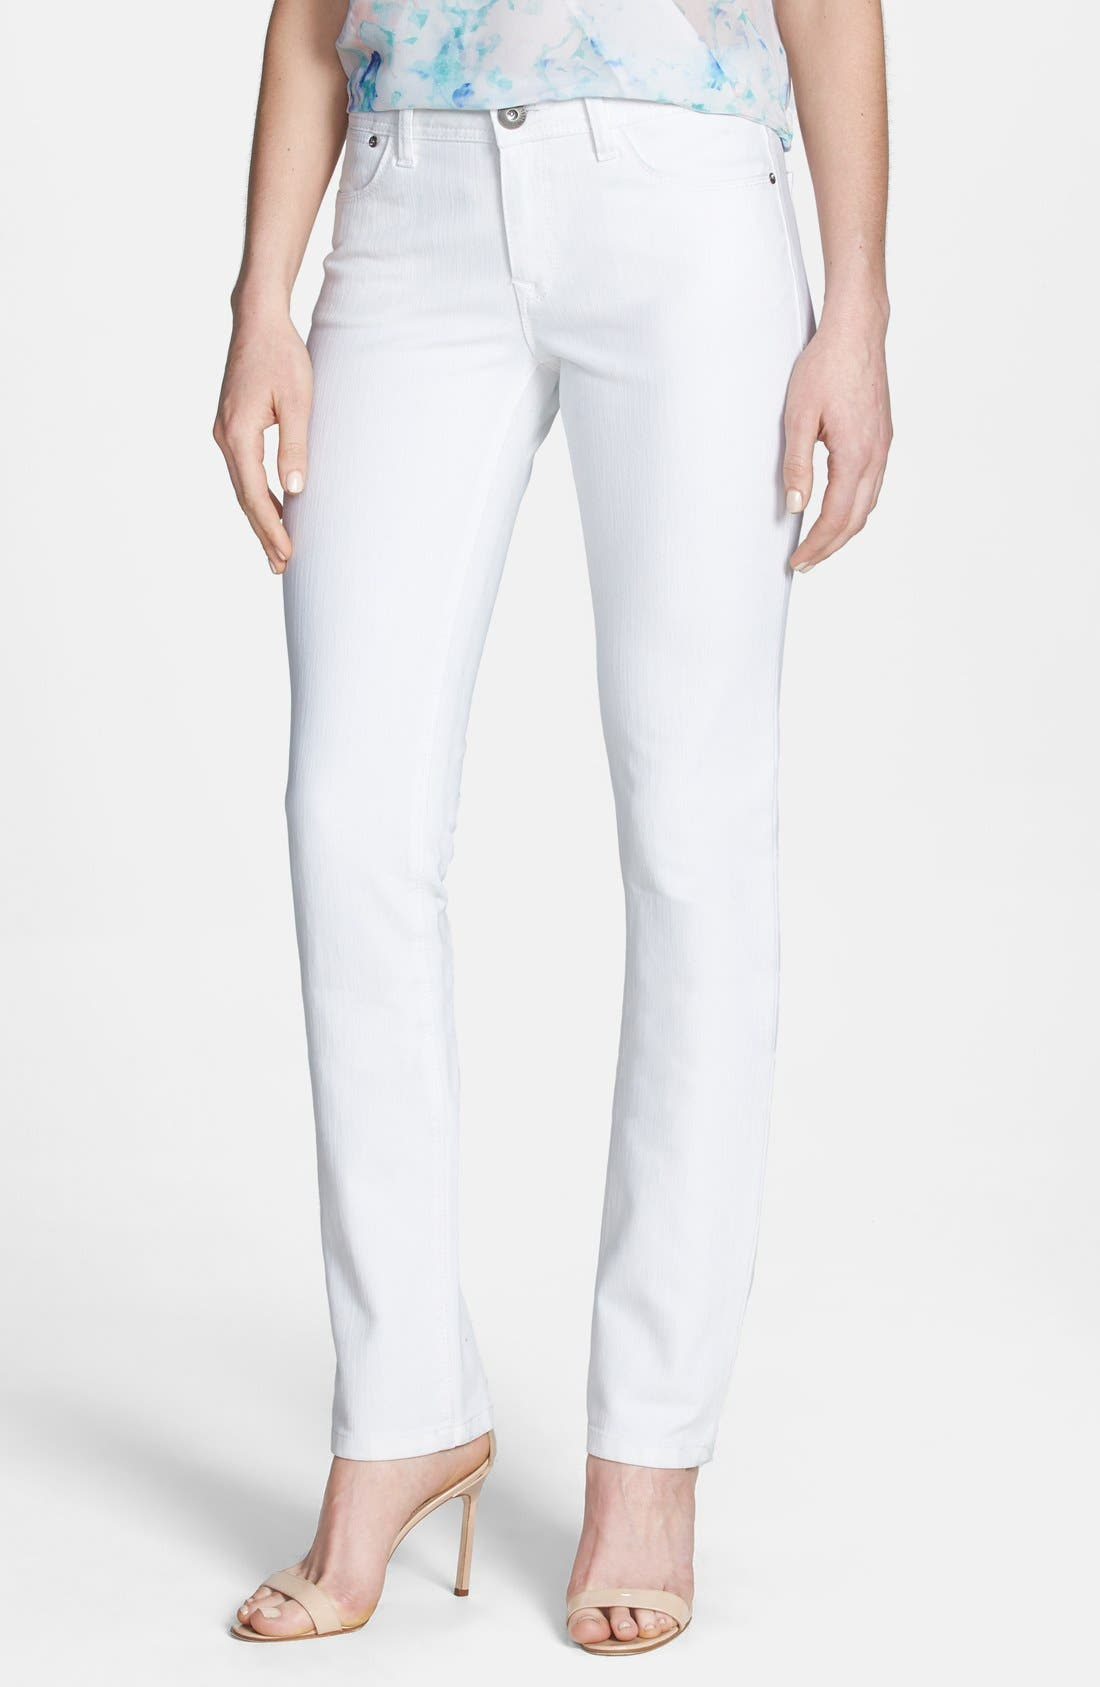 Main Image - DL1961 'Coco' Curvy Straight Jeans (Milk)